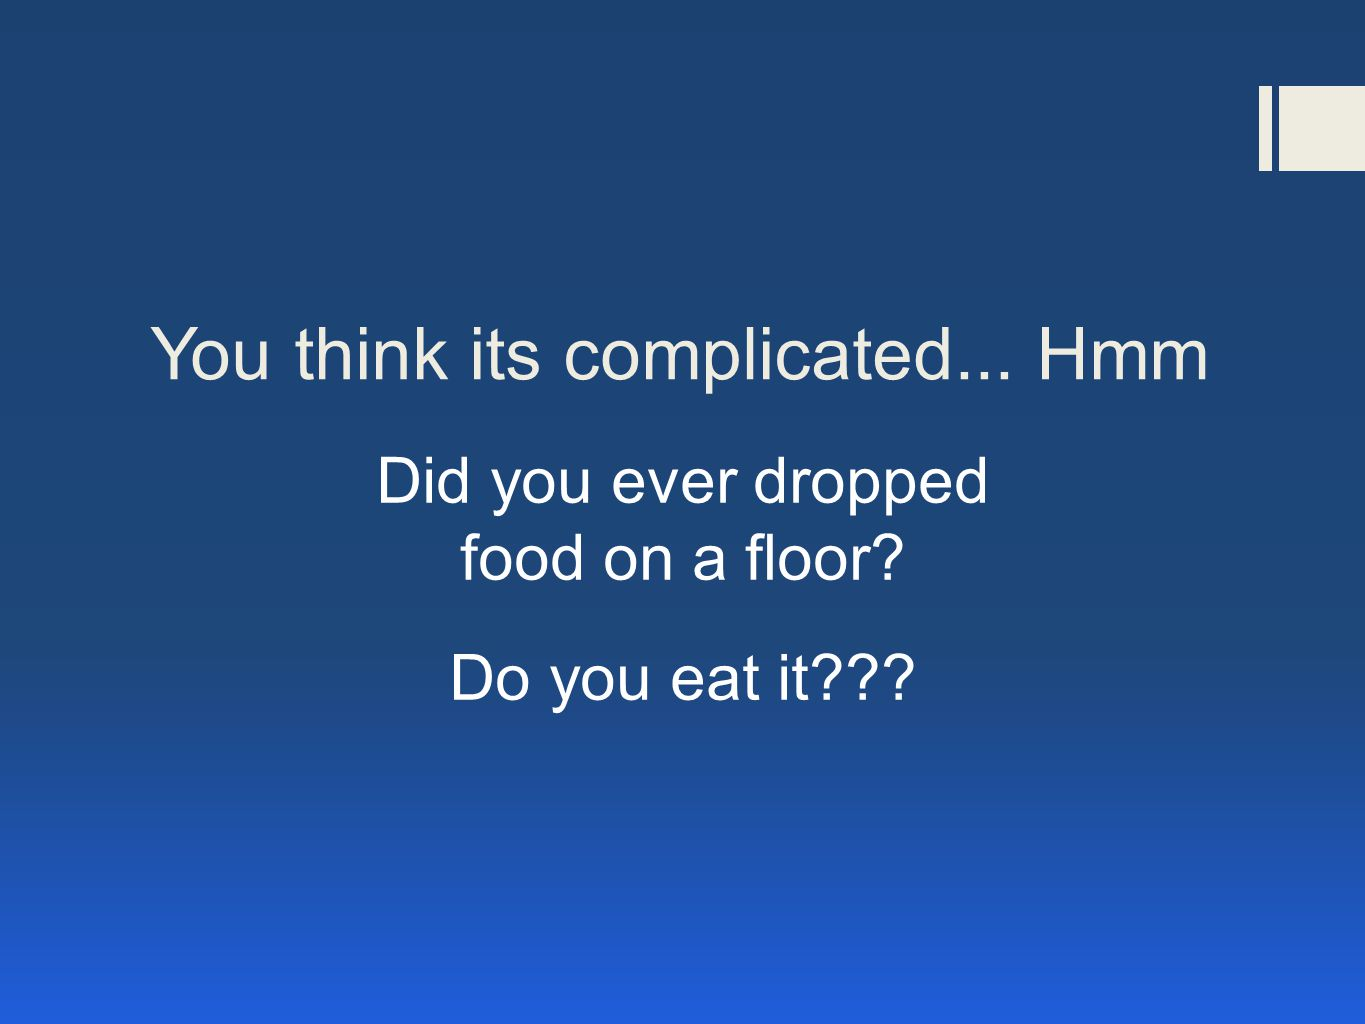 You think its complicated... Hmm Did you ever dropped food on a floor Do you eat it